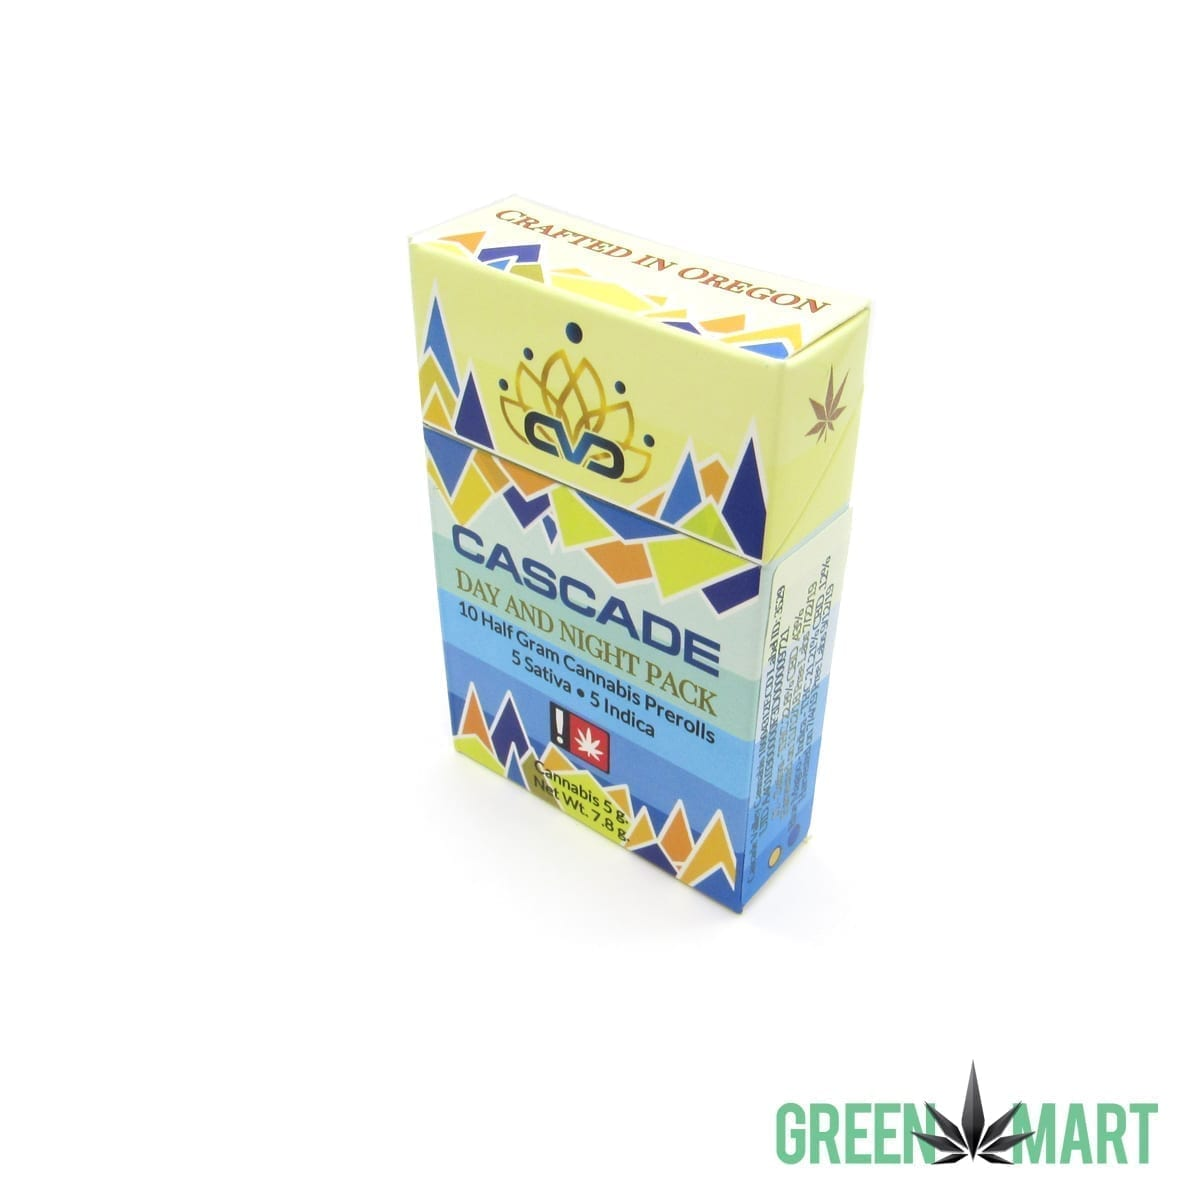 Cascade Valley Cannabis 10 Preroll Pack - Day and Night Pack